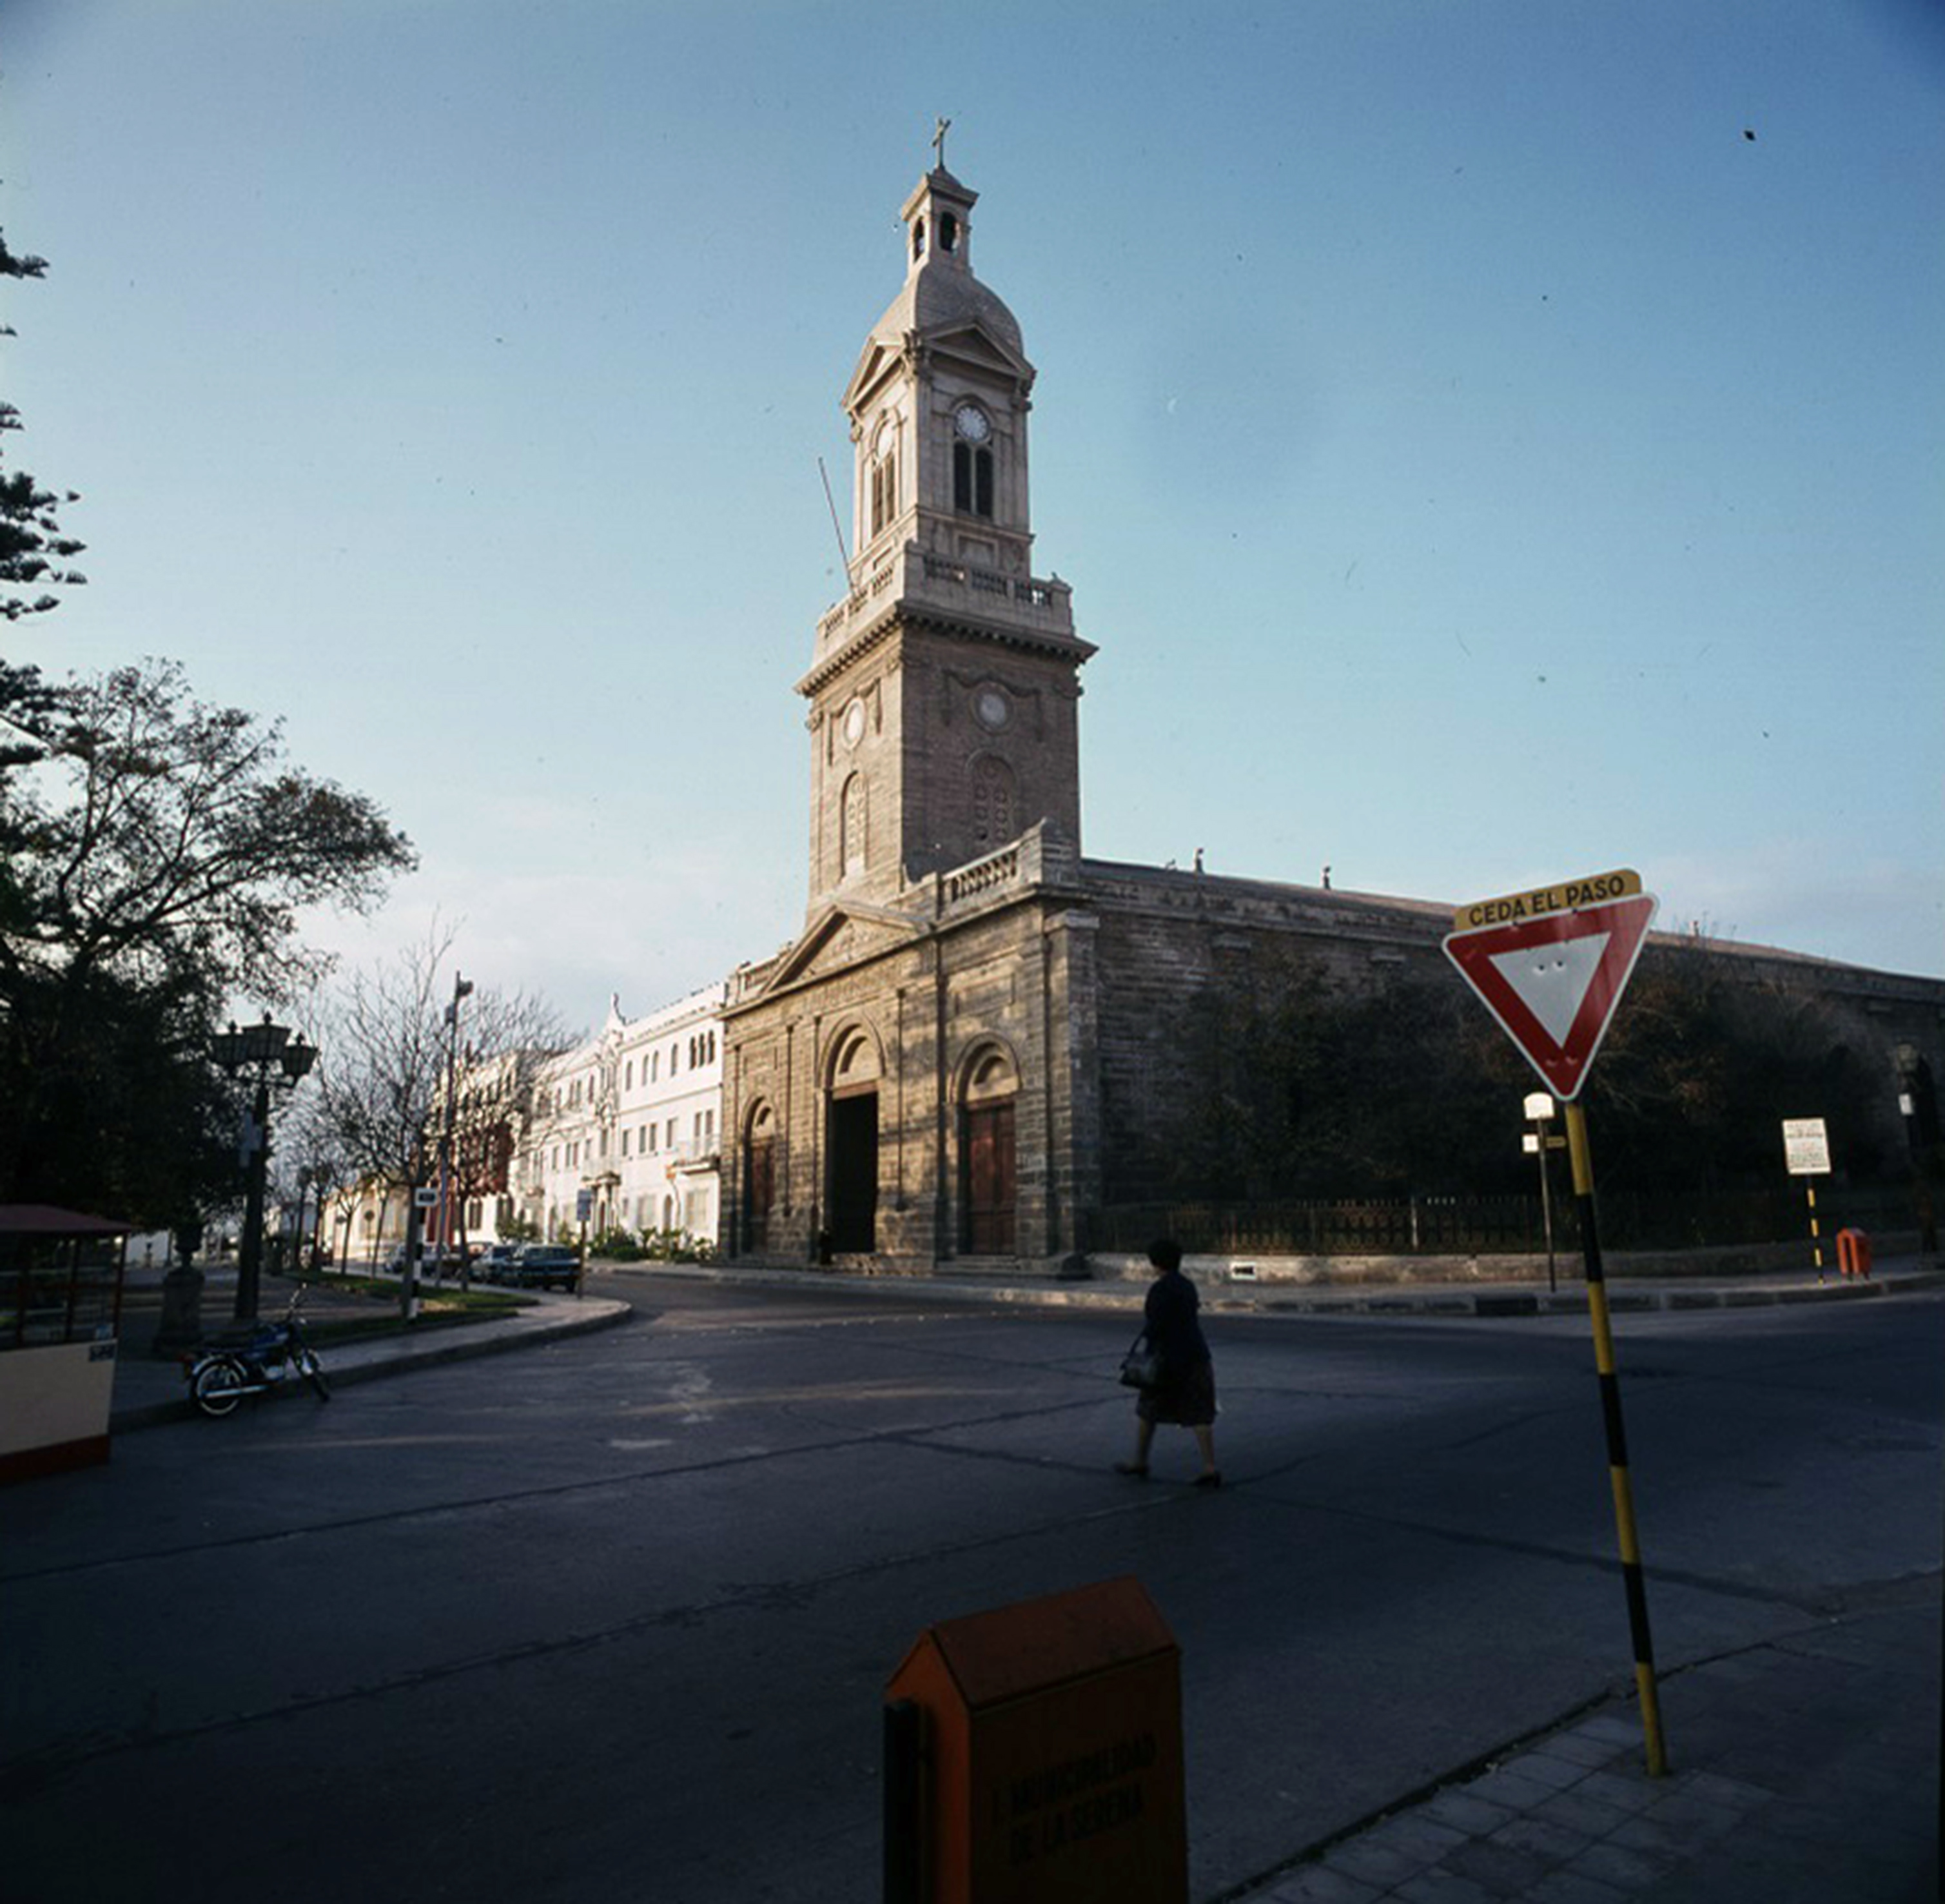 Enterreno - Fotos históricas de chile - fotos antiguas de Chile - Catedral de La Serena en 1980